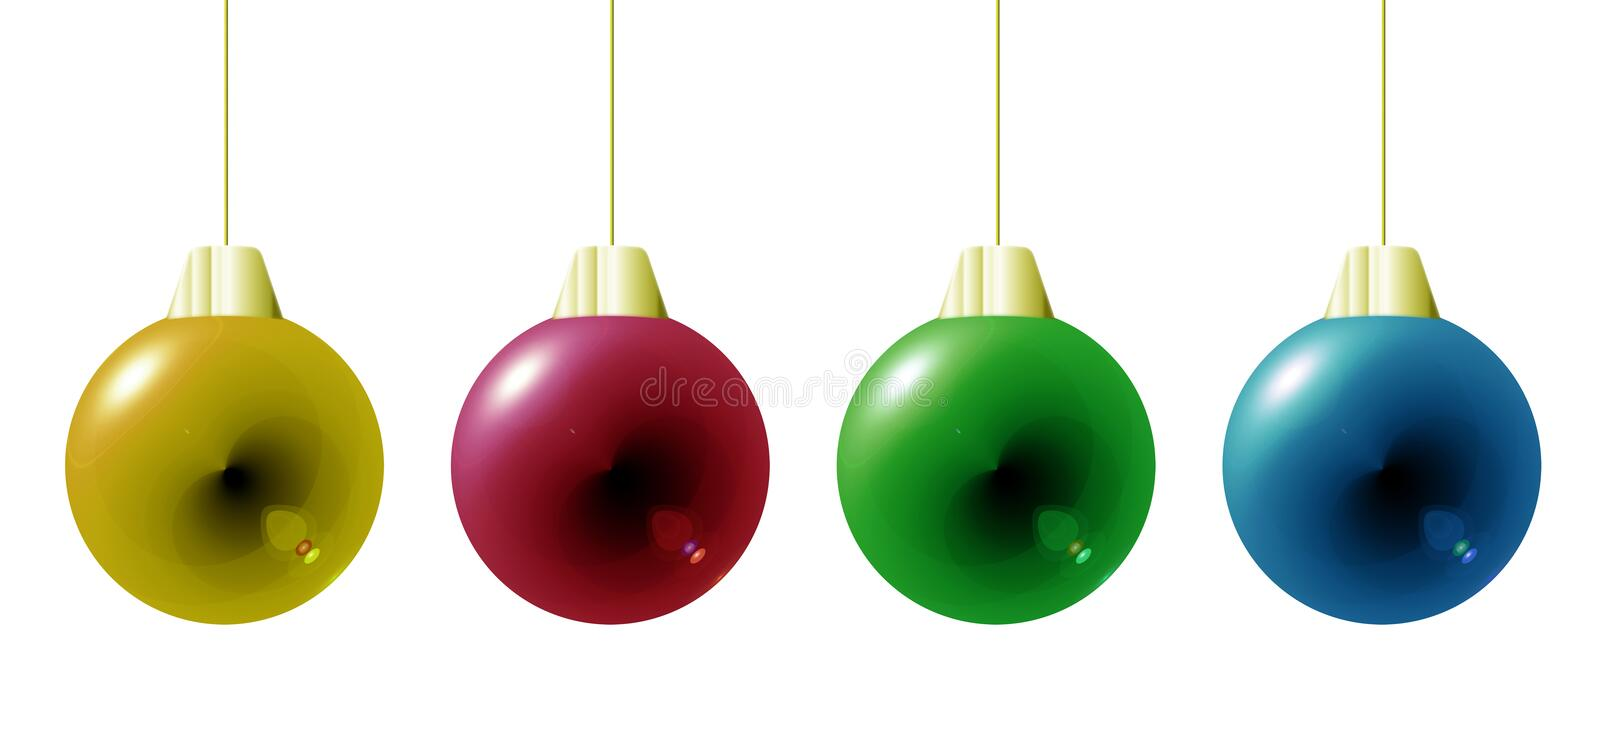 Colorful Christmas baubles. Close up of four colorful Christmas baubles, isolated on white background stock illustration